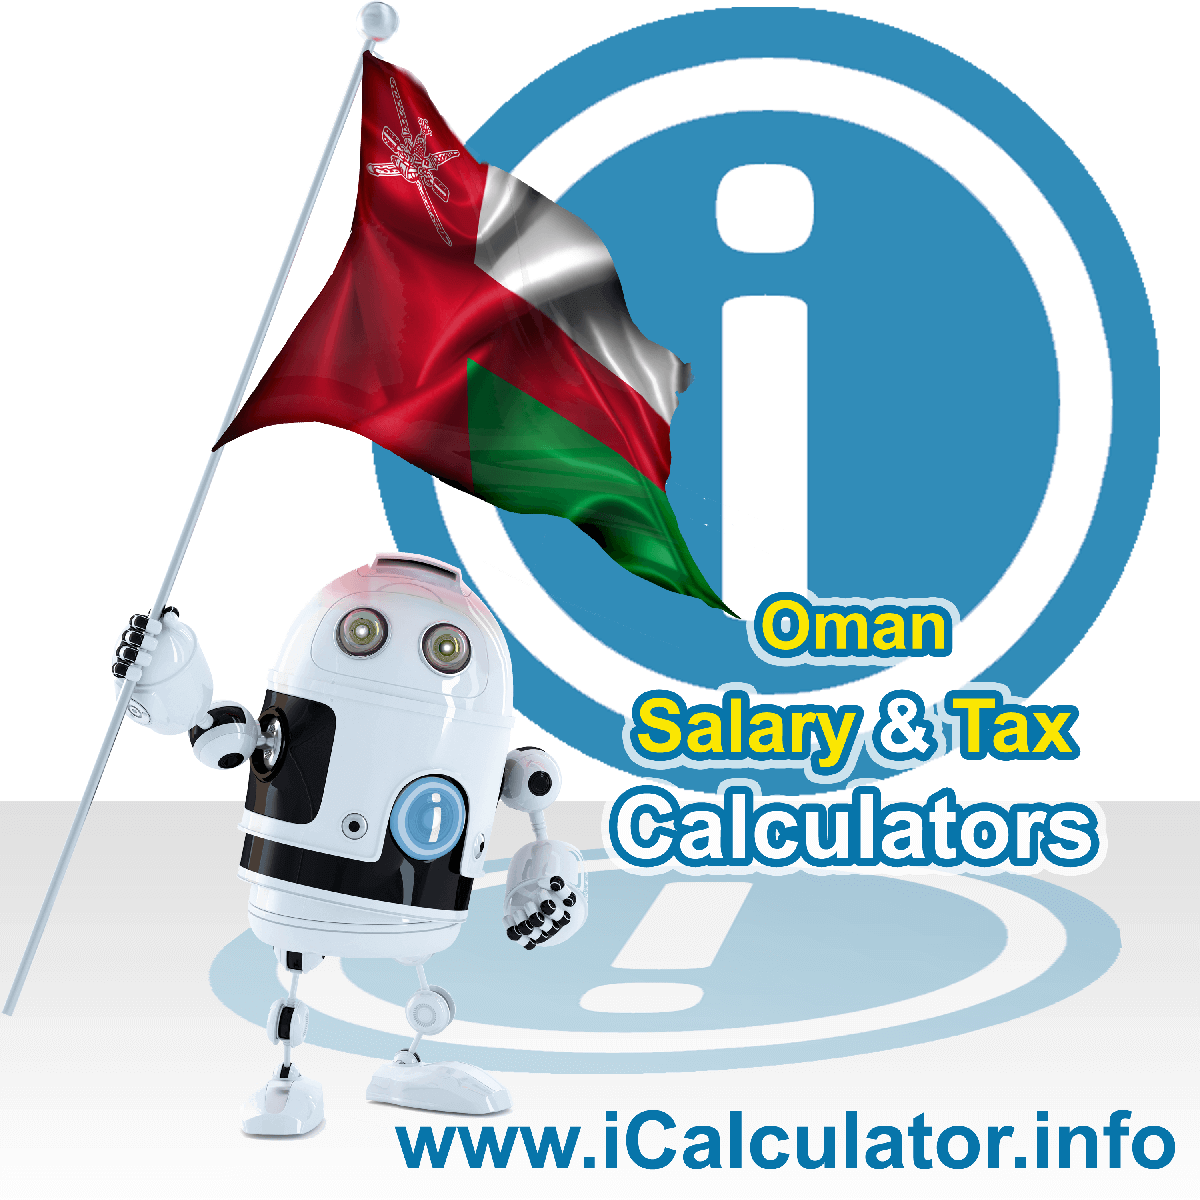 Oman Salary Calculator. This image shows the Omanese flag and information relating to the tax formula for the Oman Tax Calculator